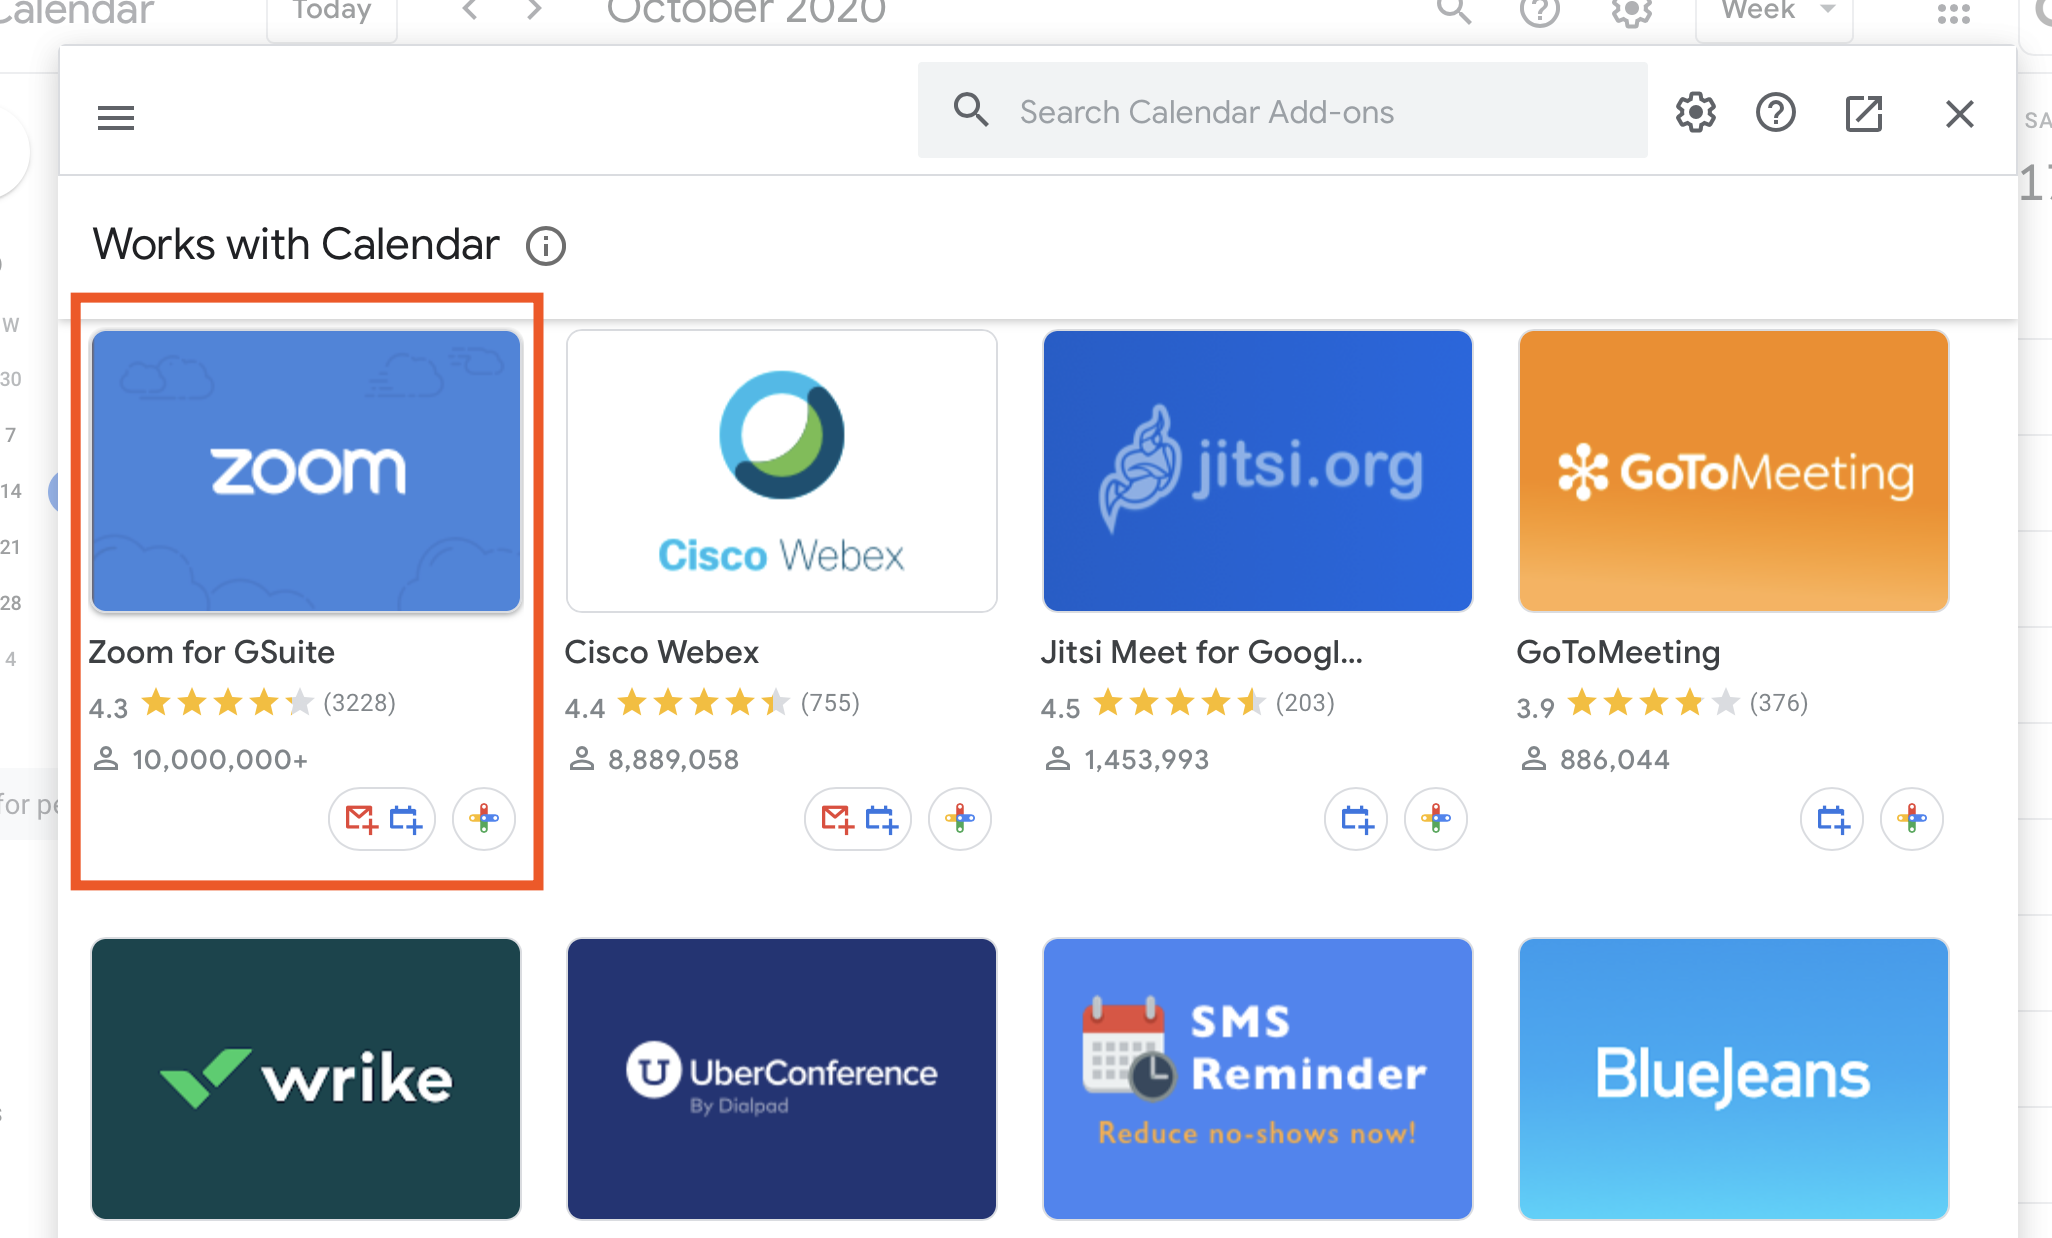 Install Zoom in Google Calendar